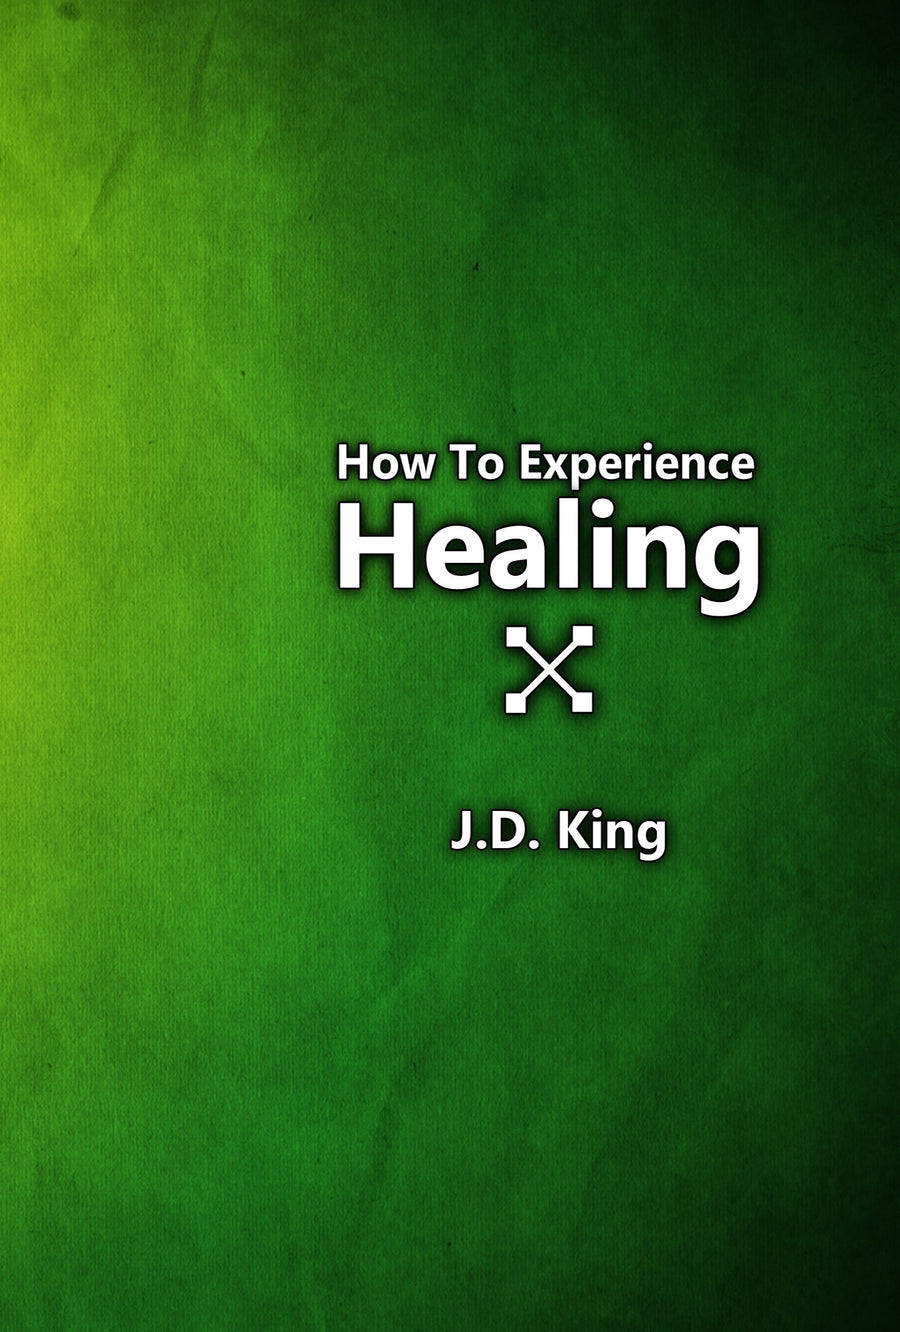 How To Experience Healing - J.D. King (DVD)